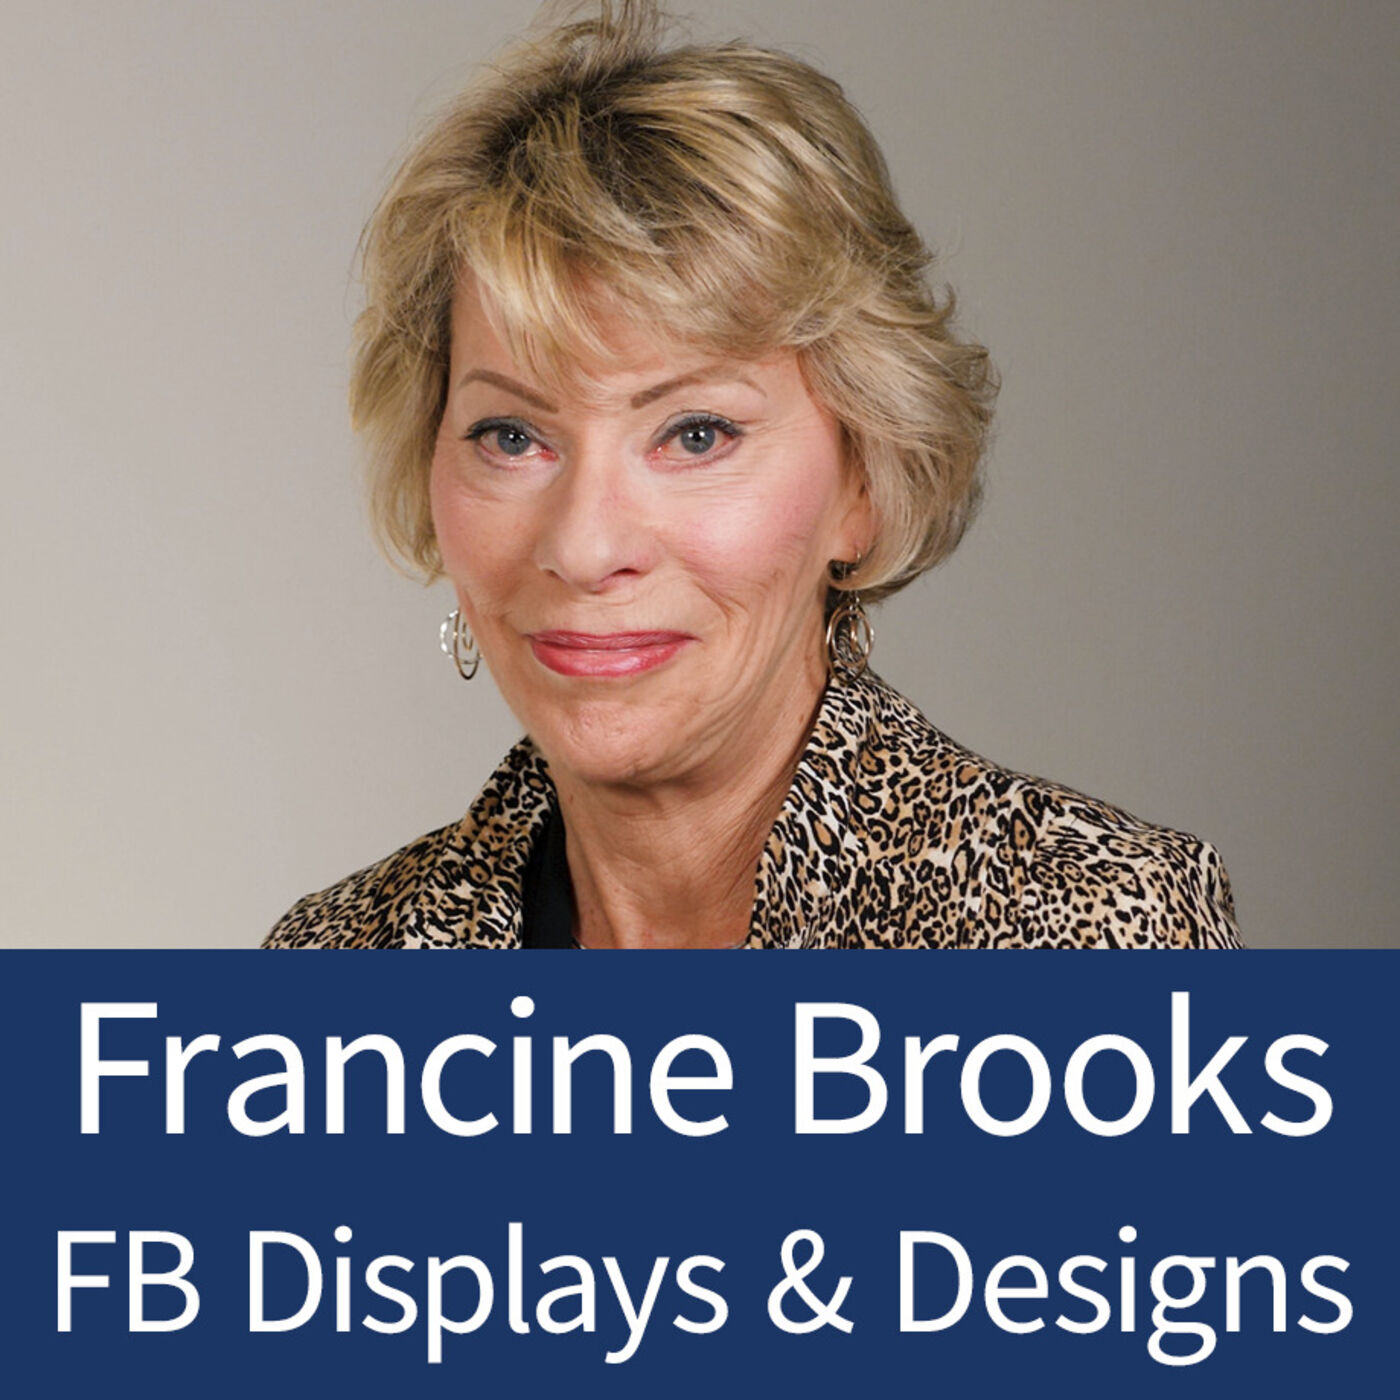 Francine Brooks - FB Displays and Designs - Adapting in Business and Moving Forward - Episode 12